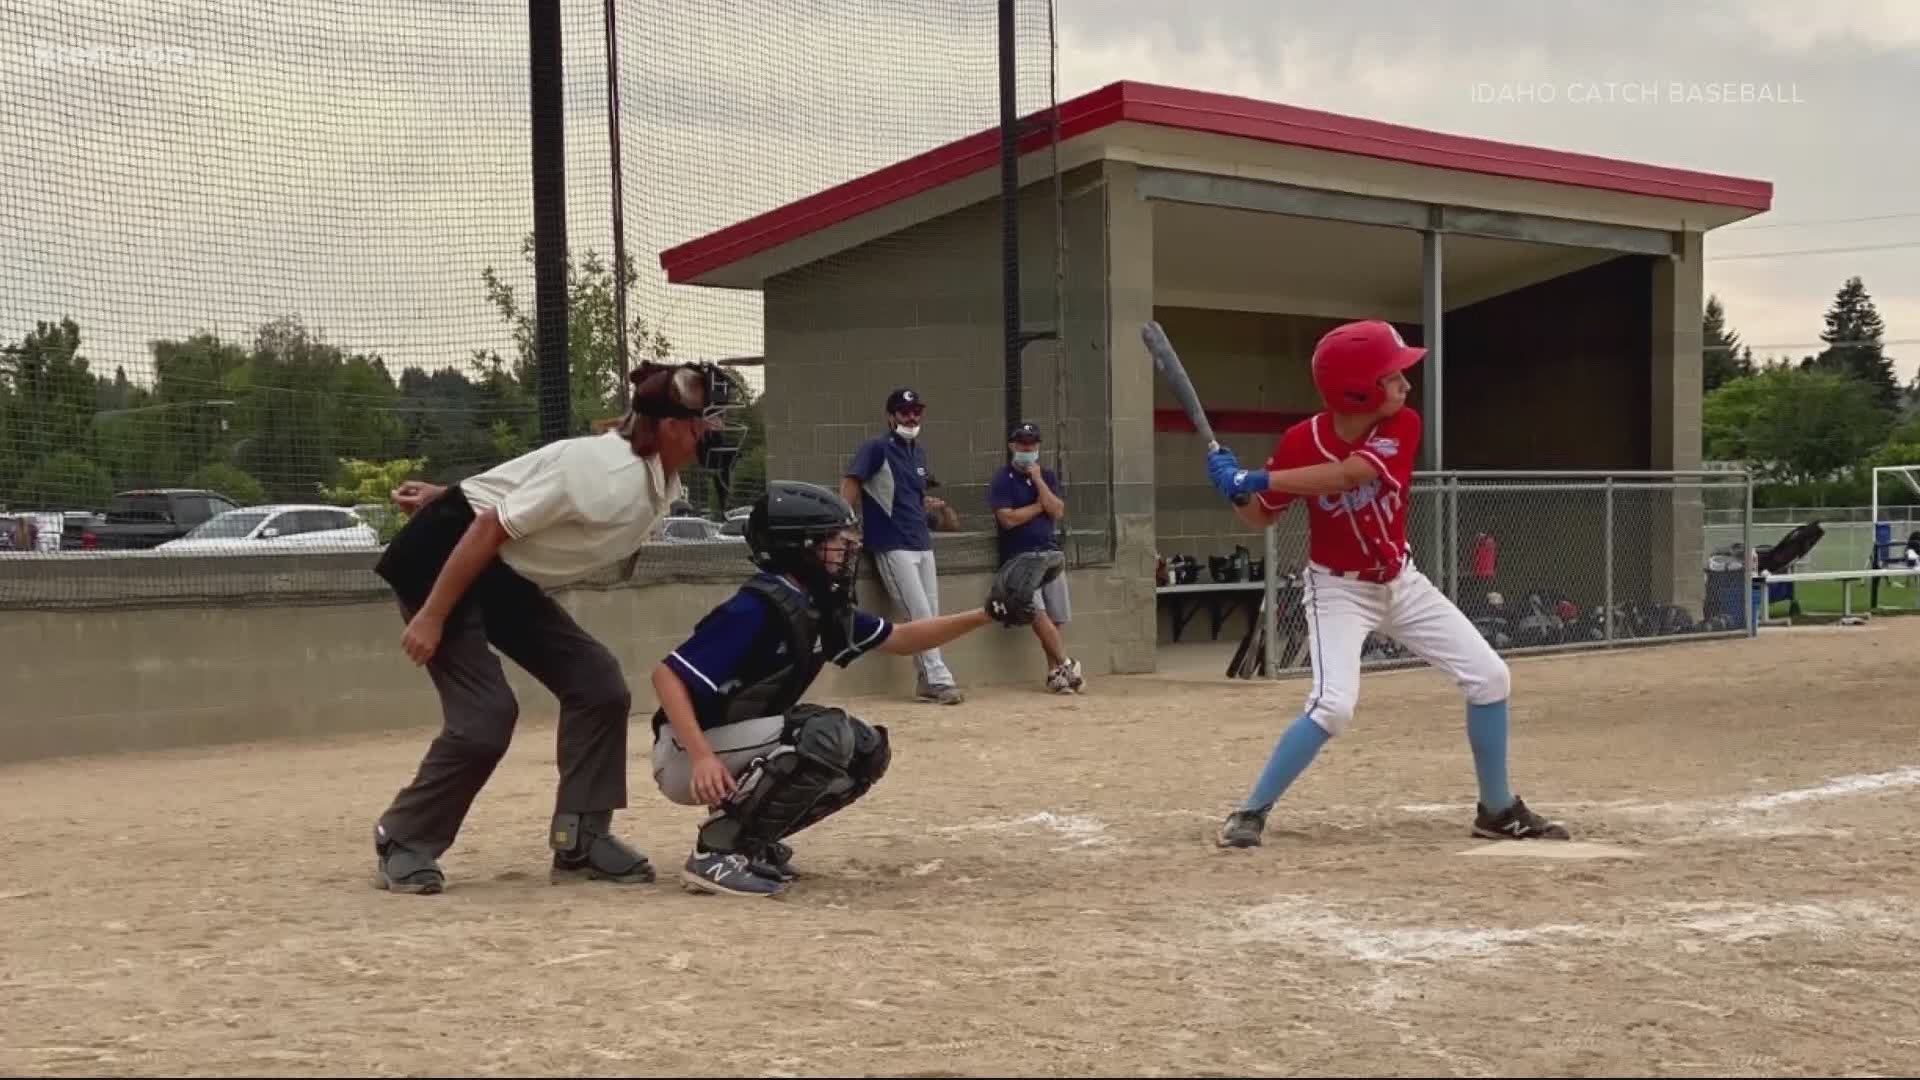 Moscow Shuts Down Youth Sports Tournaments Amid Covid 19 Concerns Krem Com